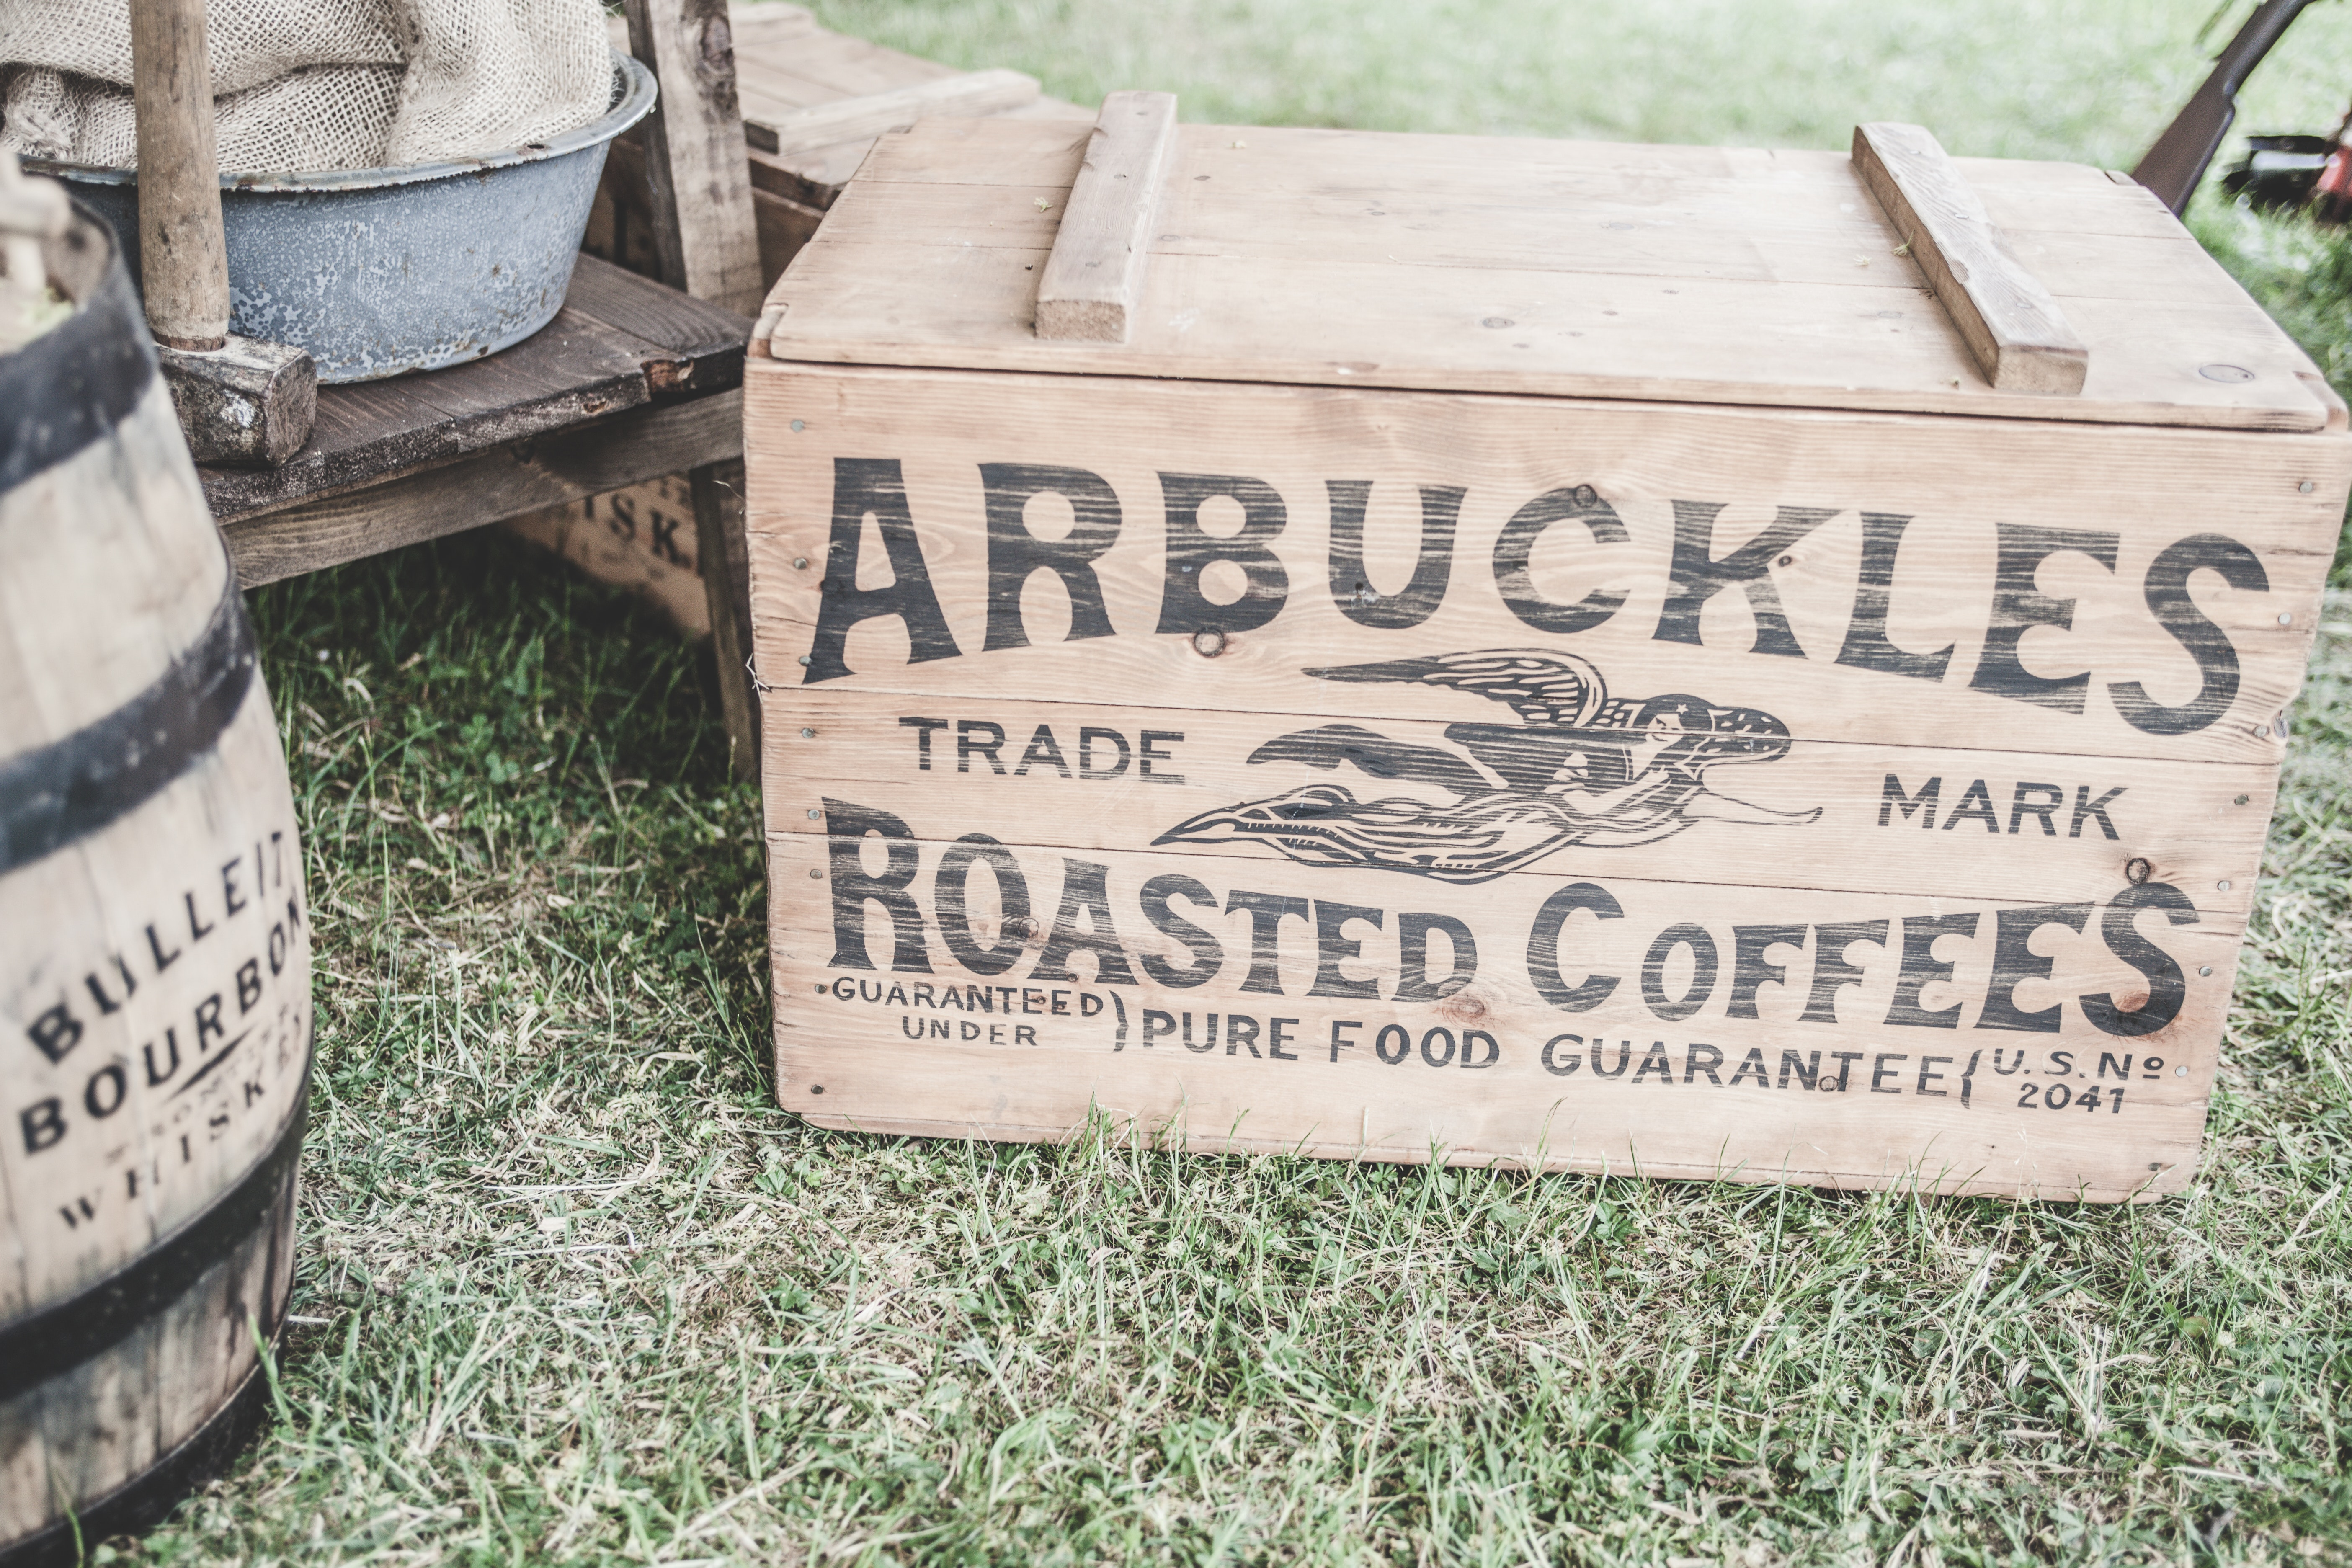 Arbuckles Roasted Coffees, Antique, Barrel, Box, Brand, HQ Photo